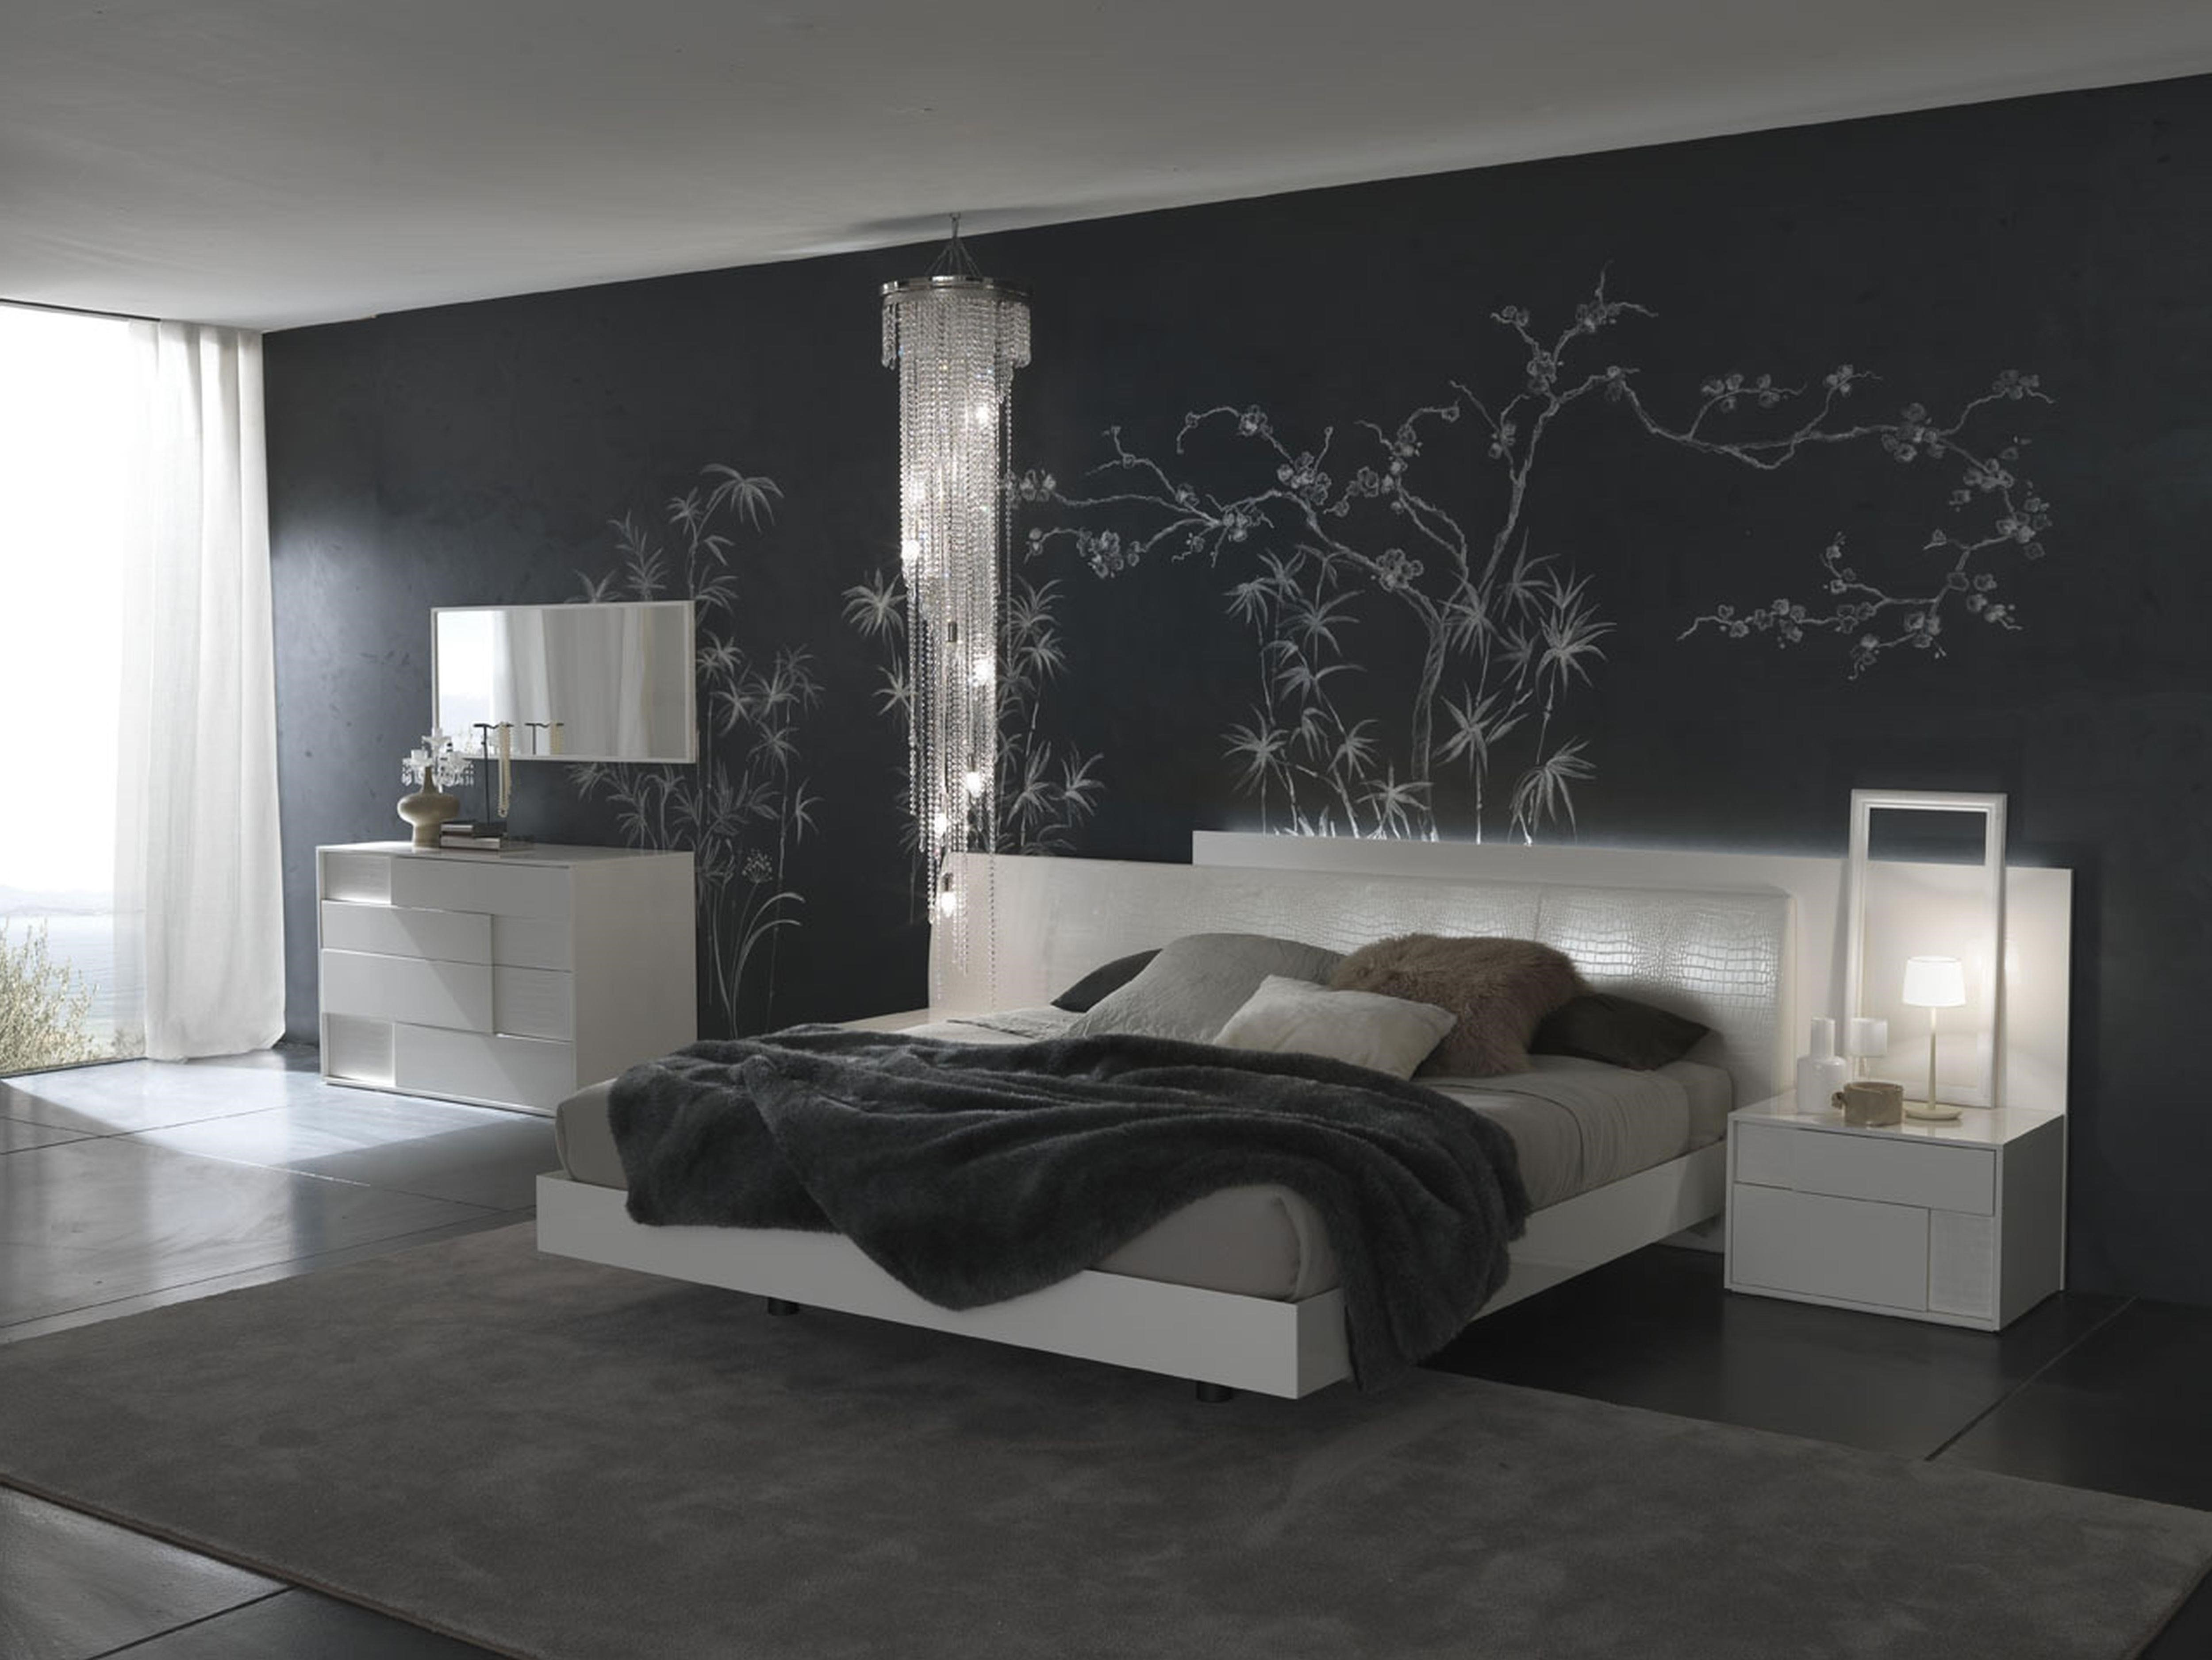 10 Fabulous Bedroom Ideas For Young Adults bedroom designs for young adults adult bedroom designs classy design 2021